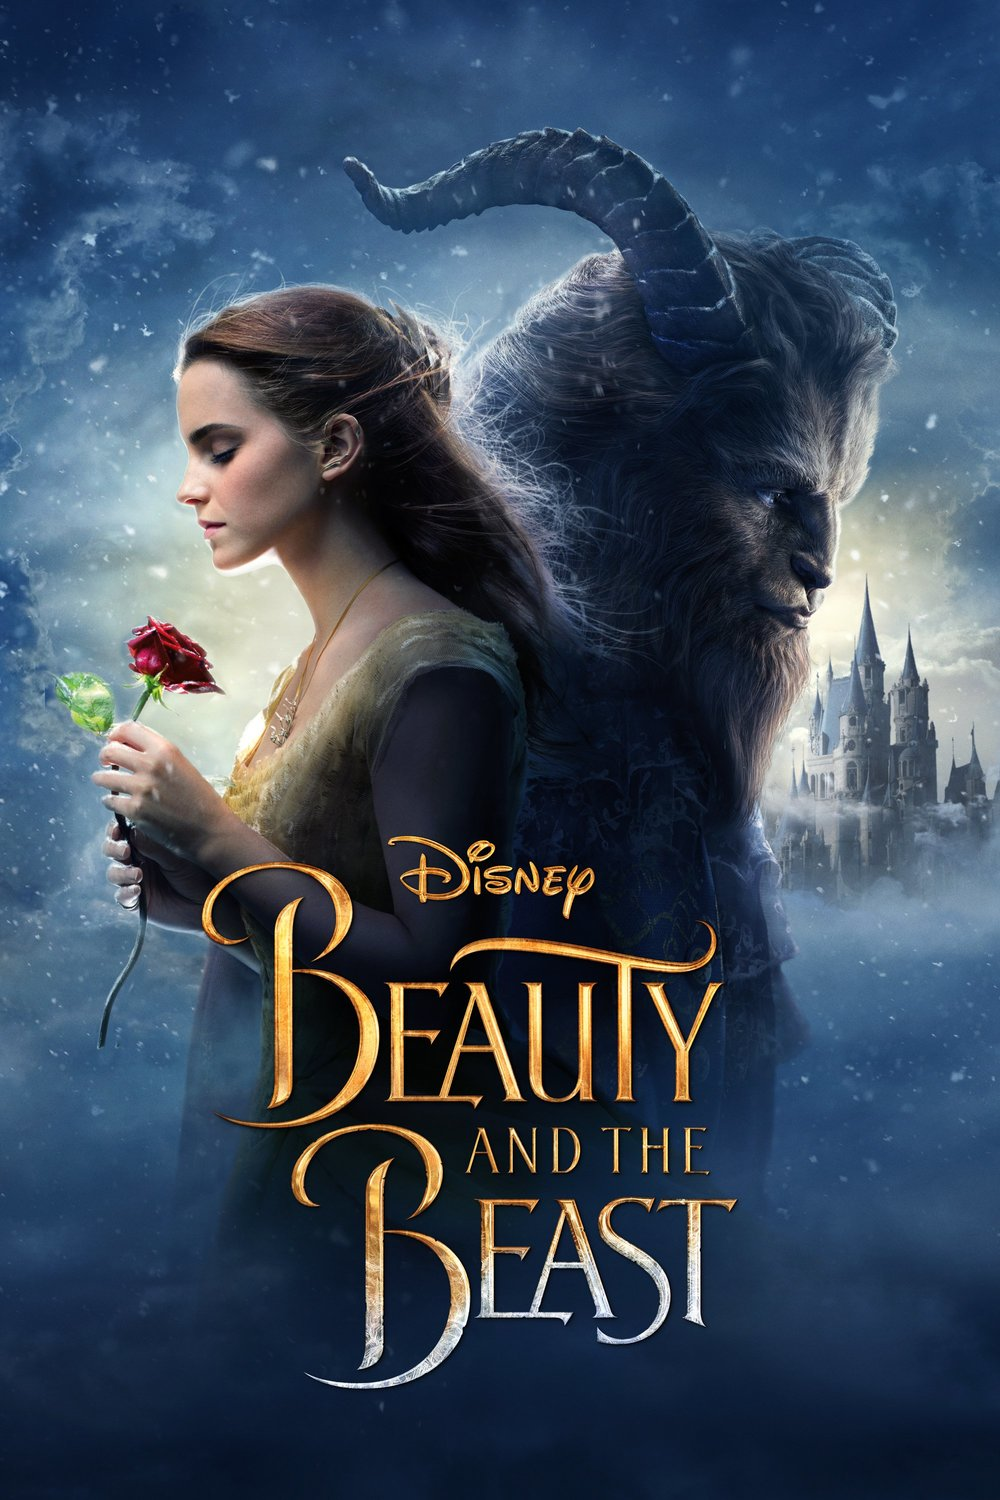 https://www.themoviedb.org/movie/321612-beauty-and-the-beast/images/posters